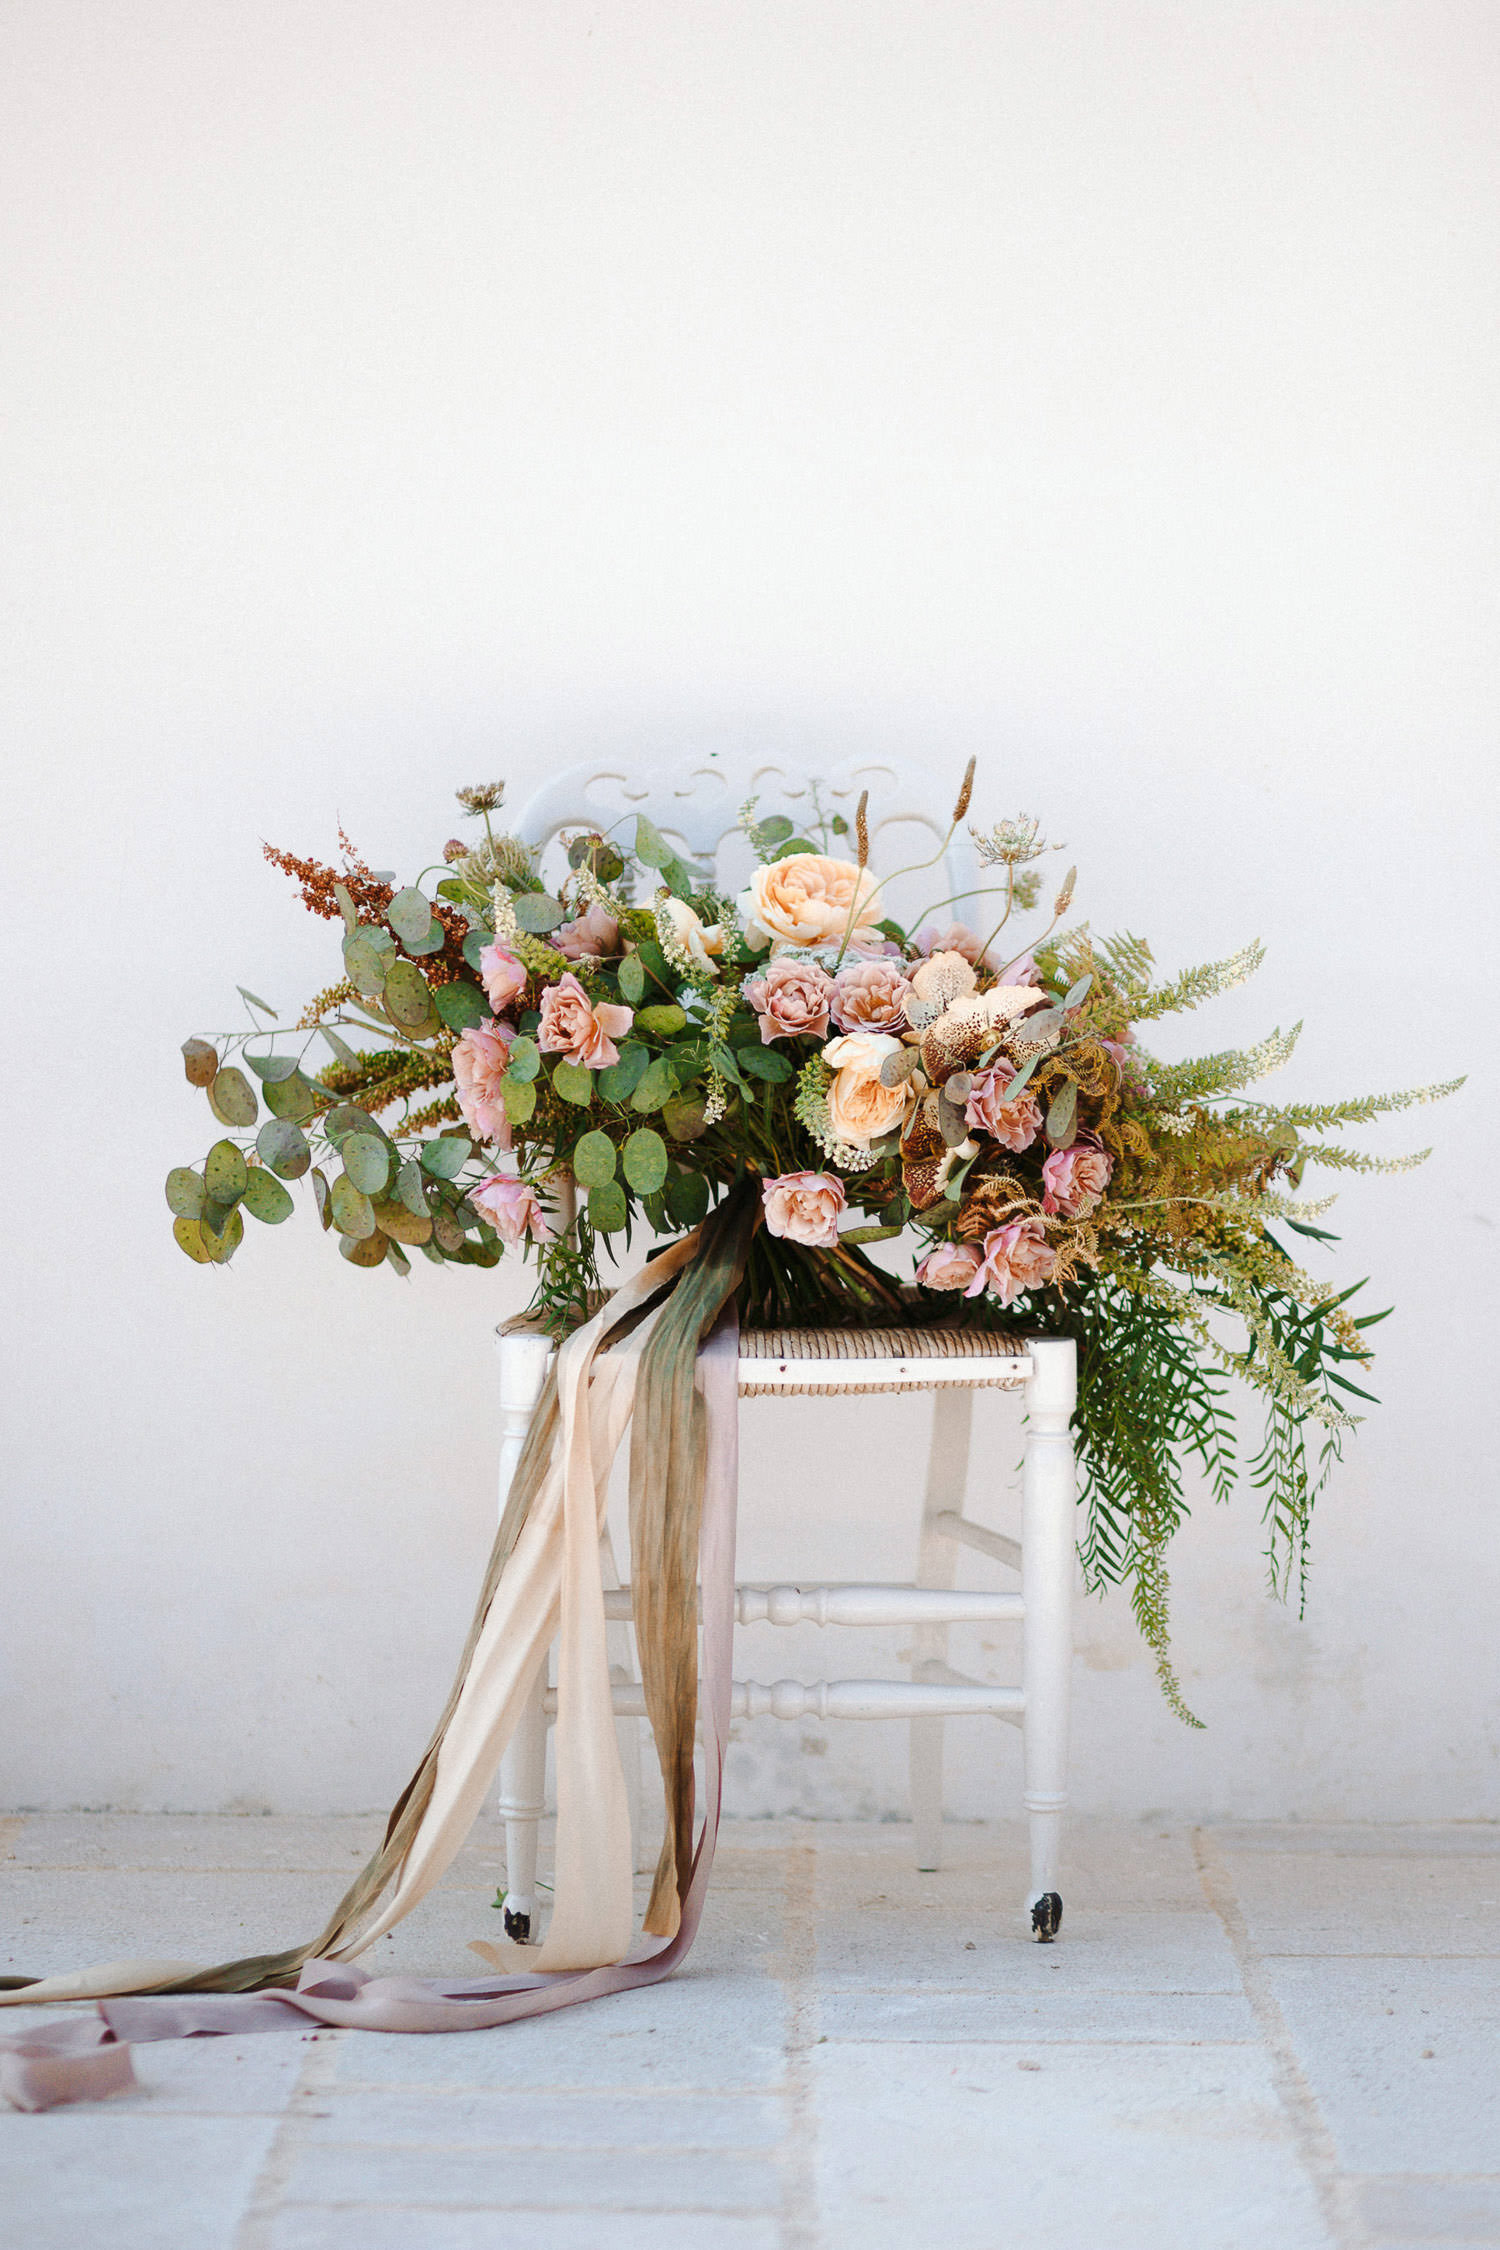 Gorgeous wedding bouquet with lush greenery made by Chiara Sperti floral events - Photo: Camilla Anchisi